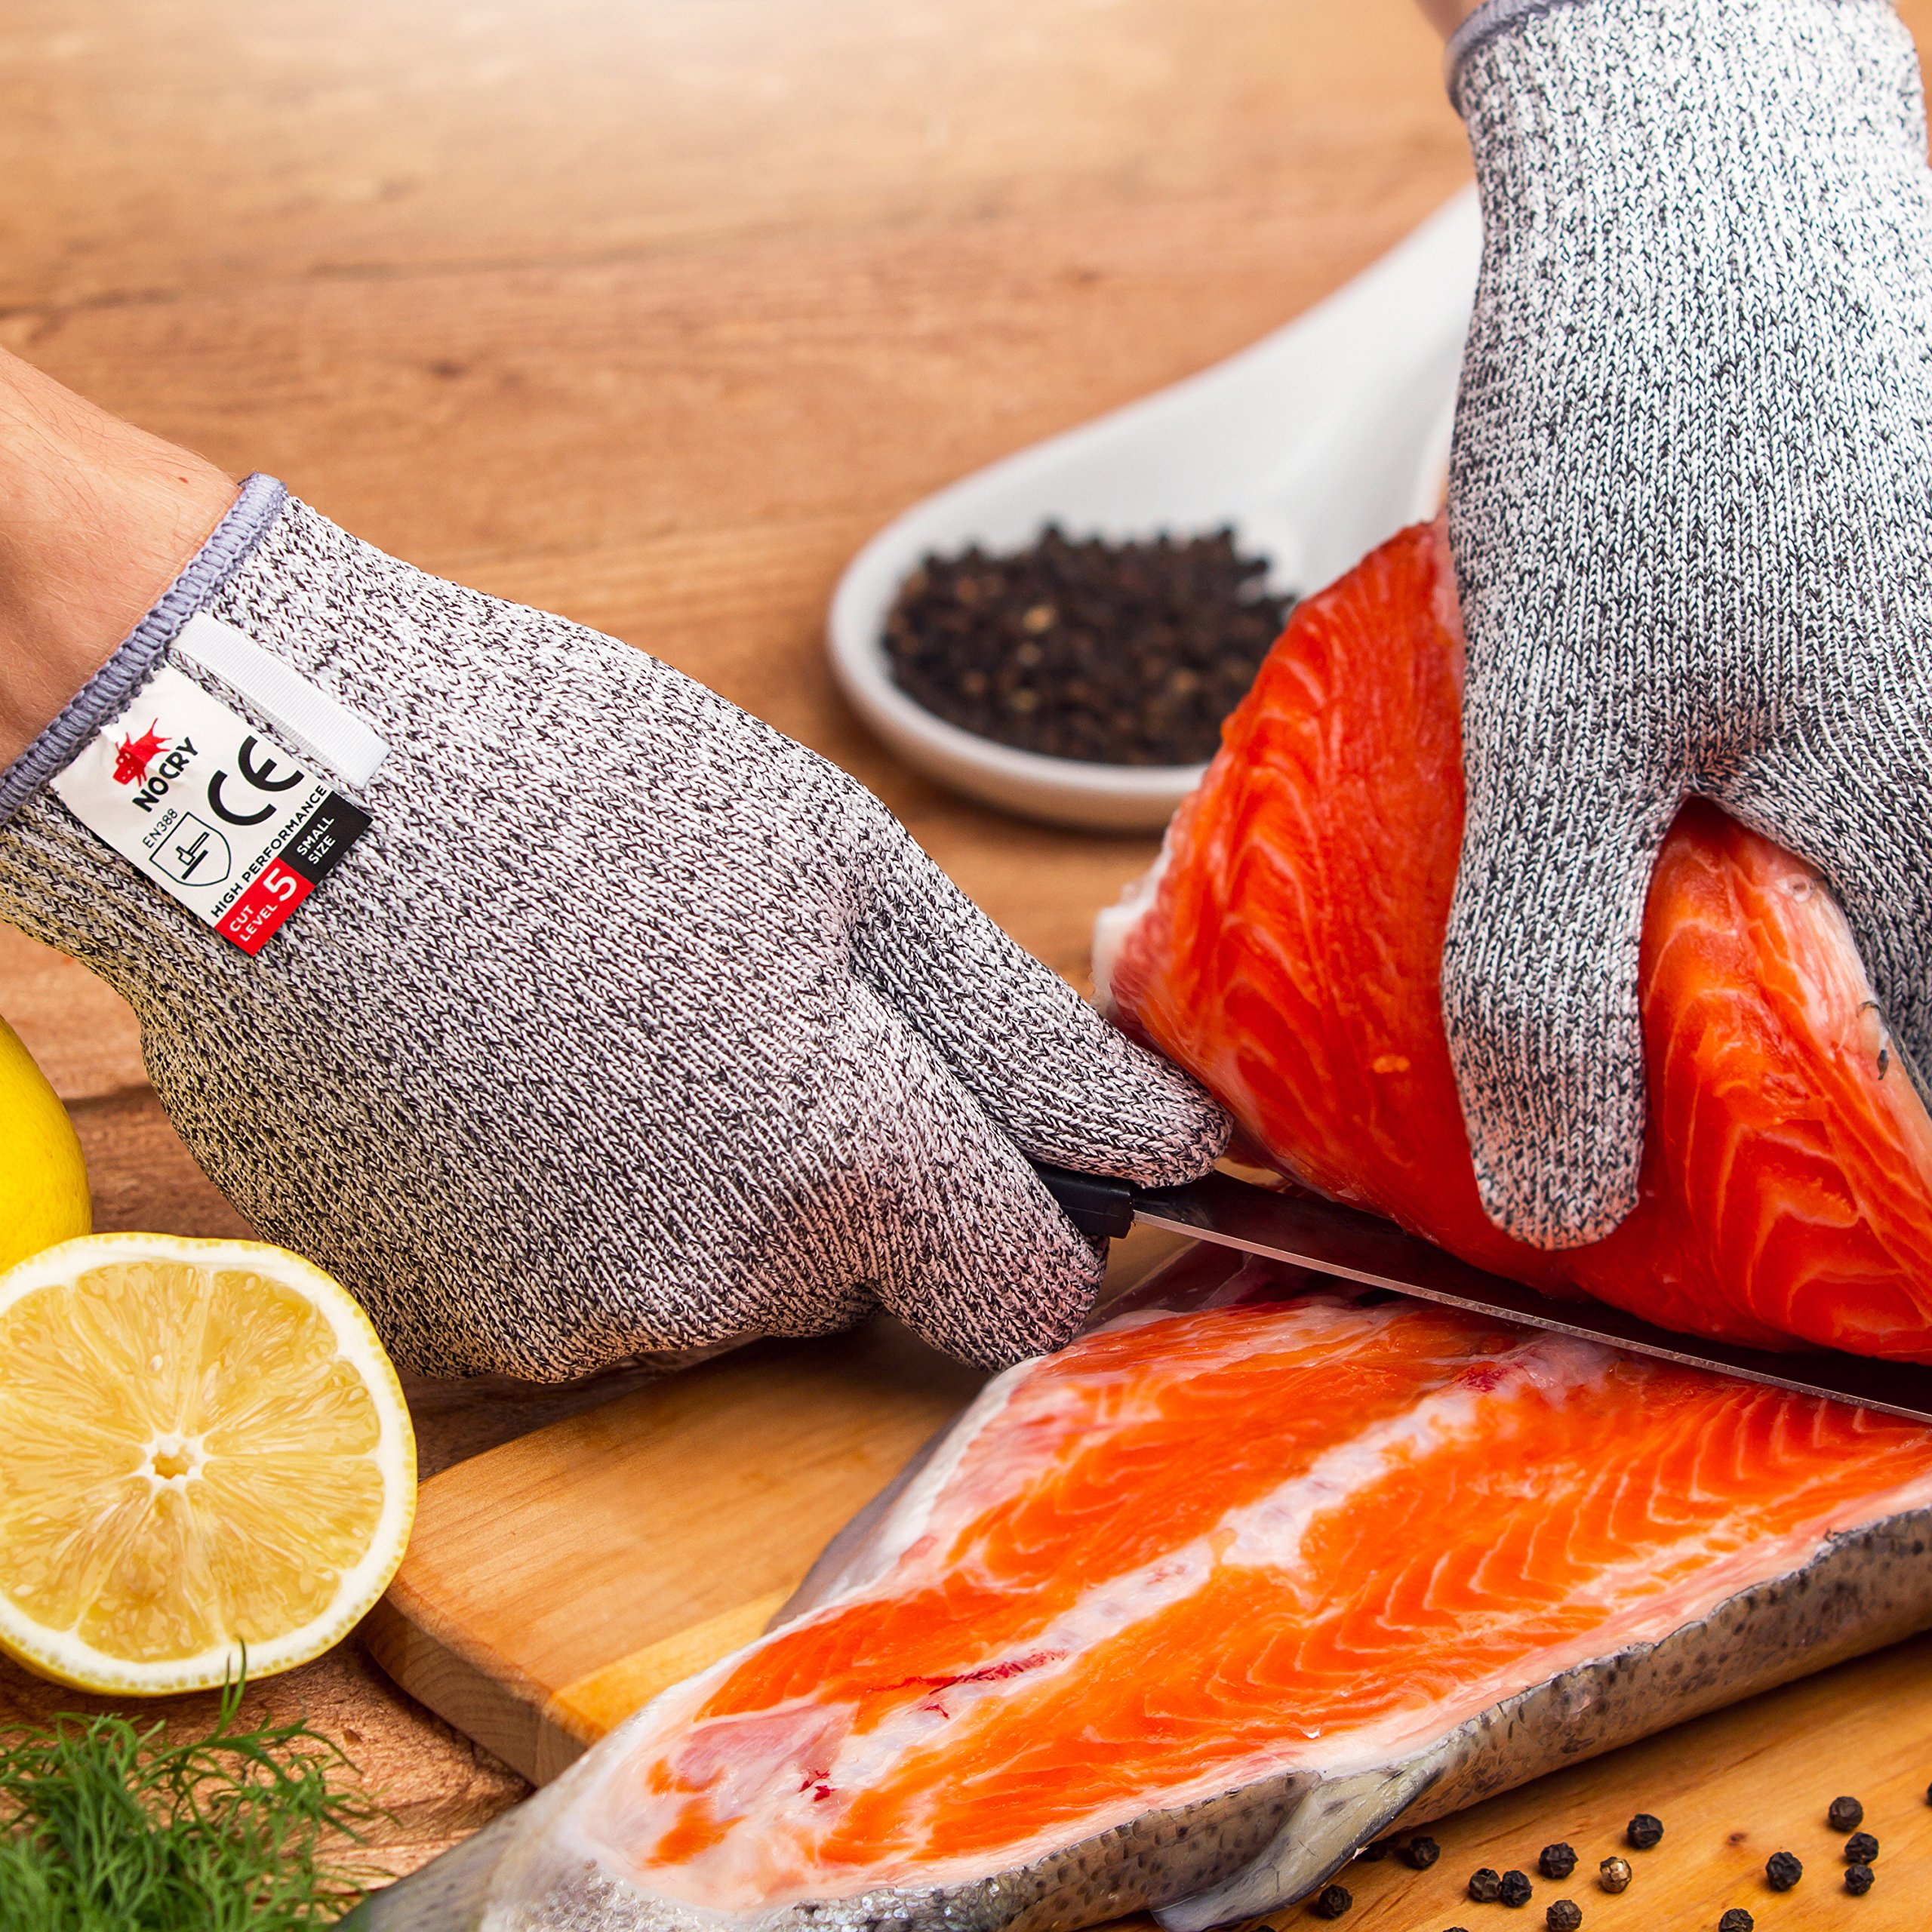 NoCry Cut Resistant Gloves - High Performance Level 5 Protection, Food Grade. Size Medium, Free Ebook Included! by NoCry (Image #6)